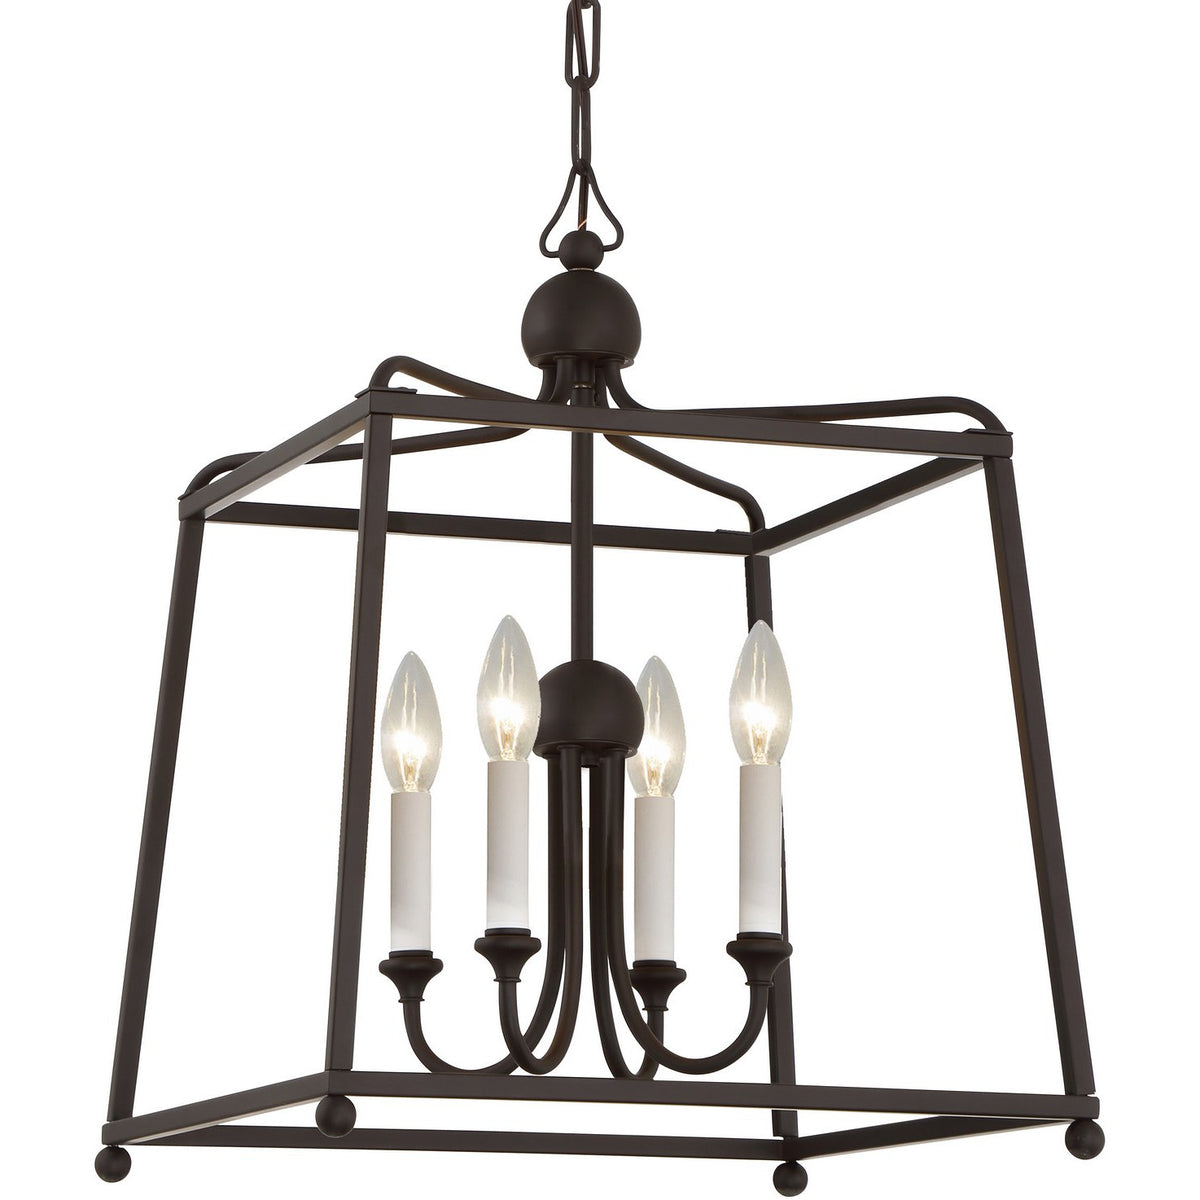 Crystorama - 2245-DB_NOSHADE - Four Light Chandelier - Sylvan - Dark Bronze